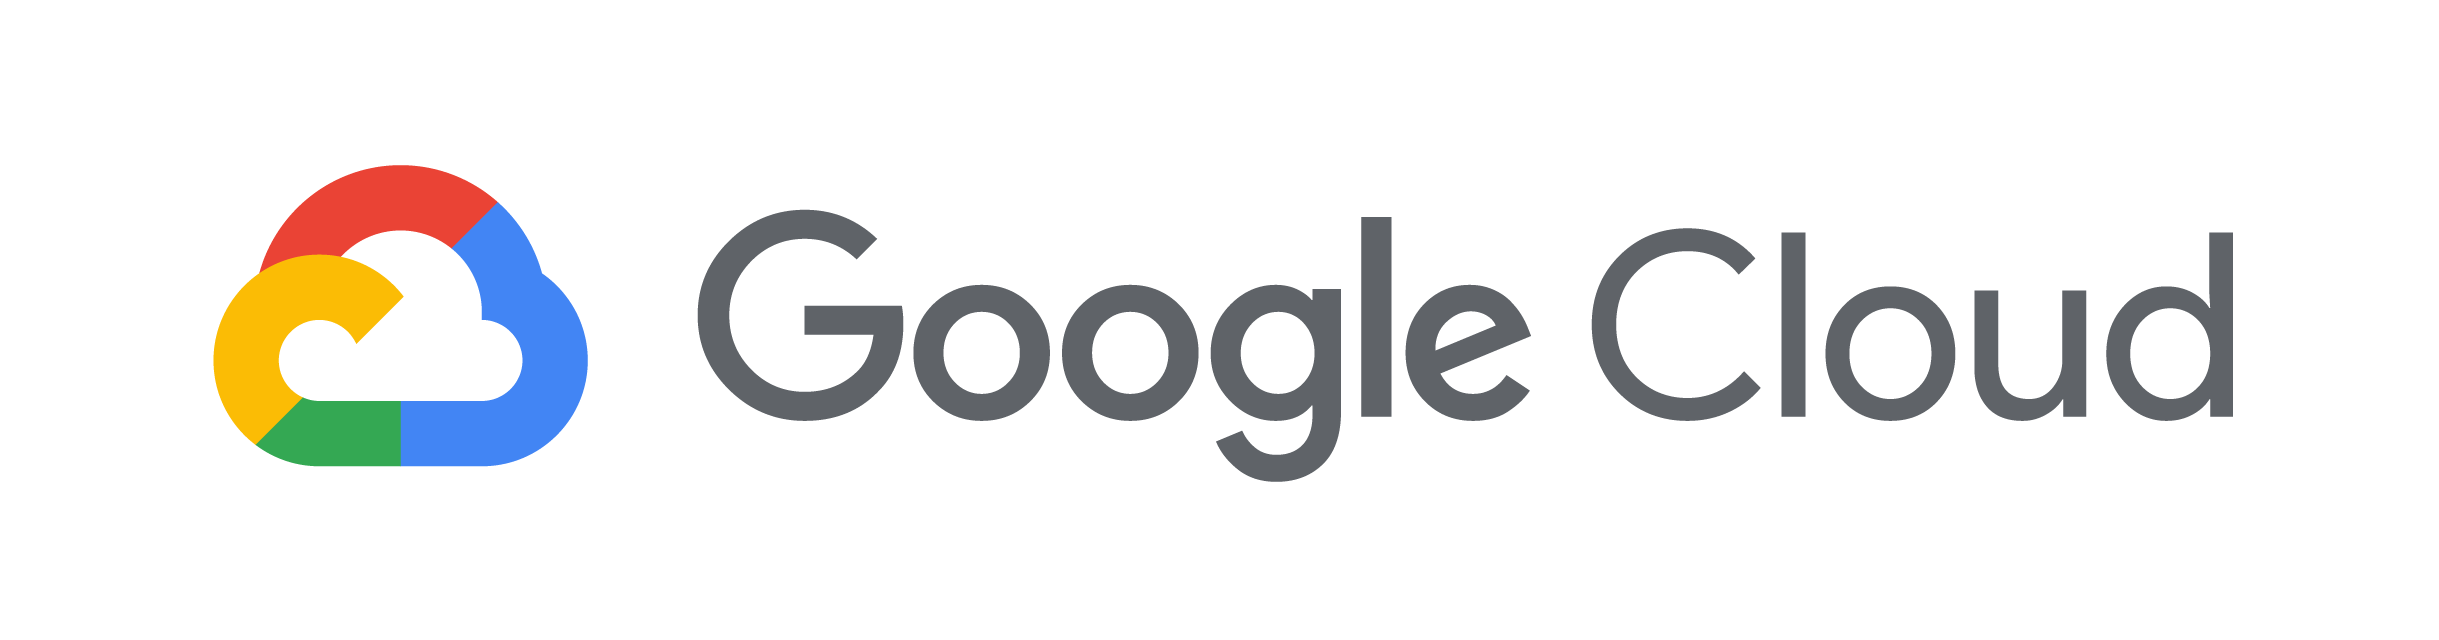 Google Cloud integration with TriNet application